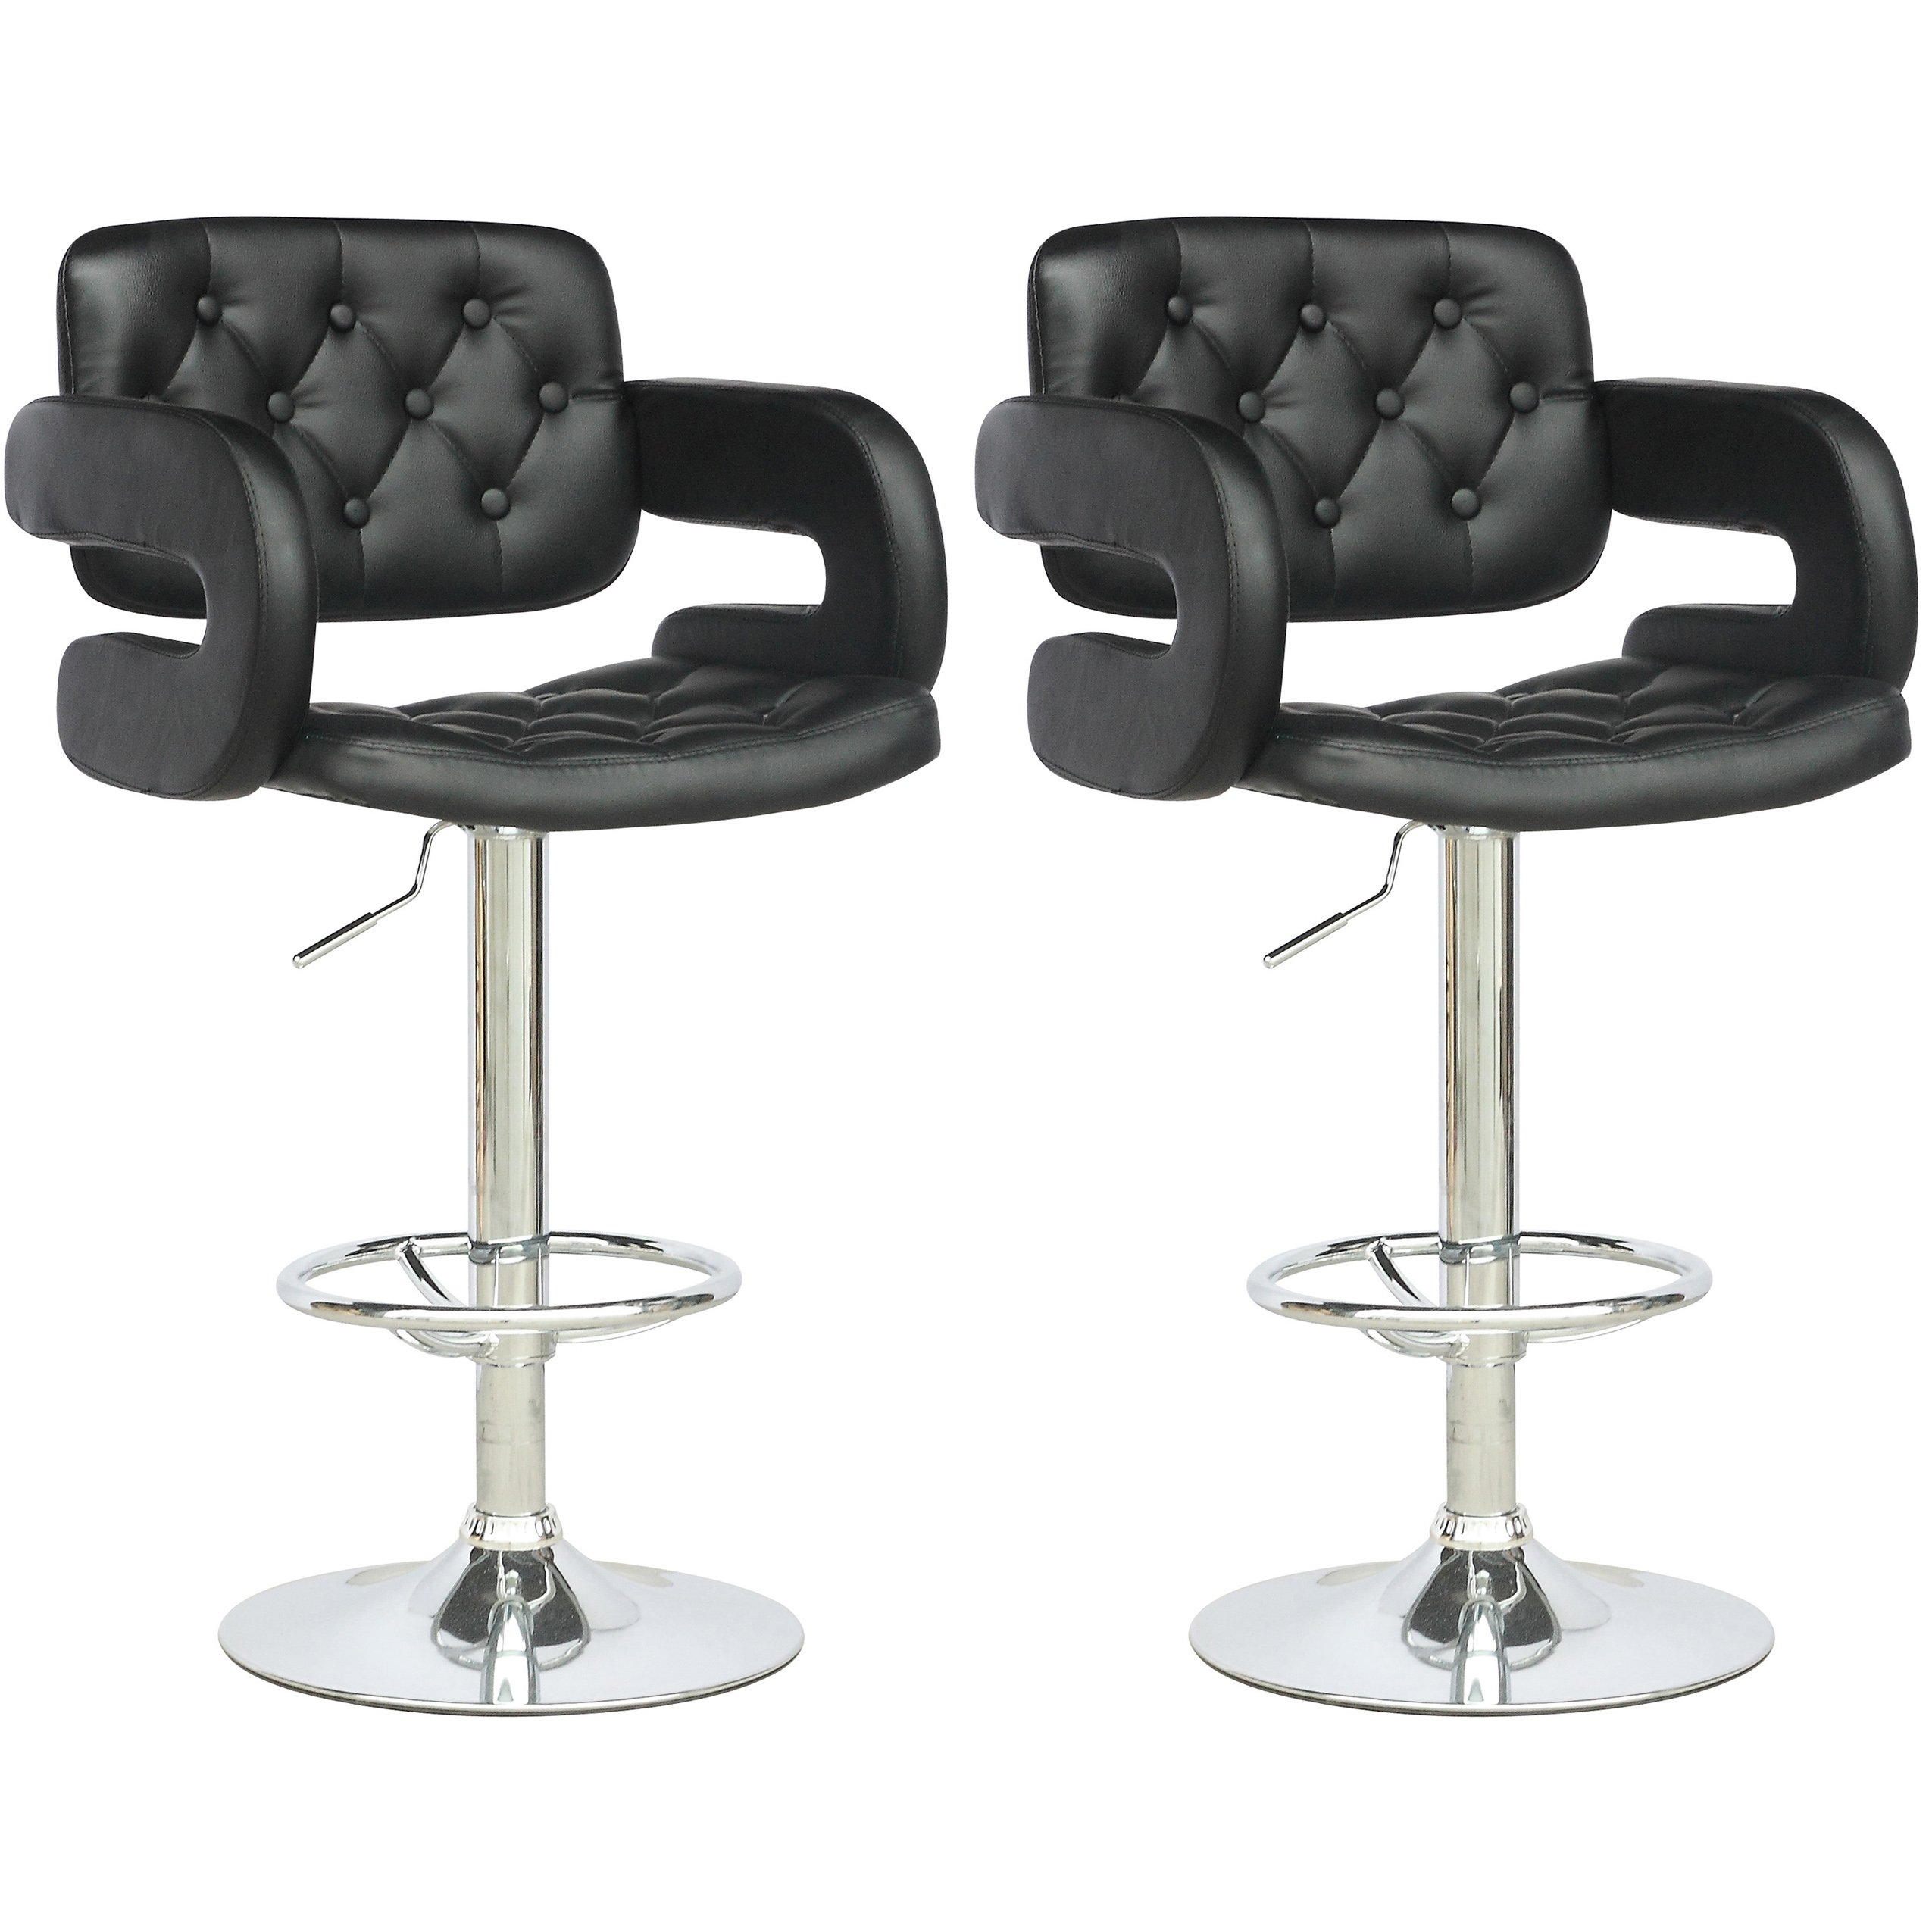 Comfortable Bar Stools Amazon Com